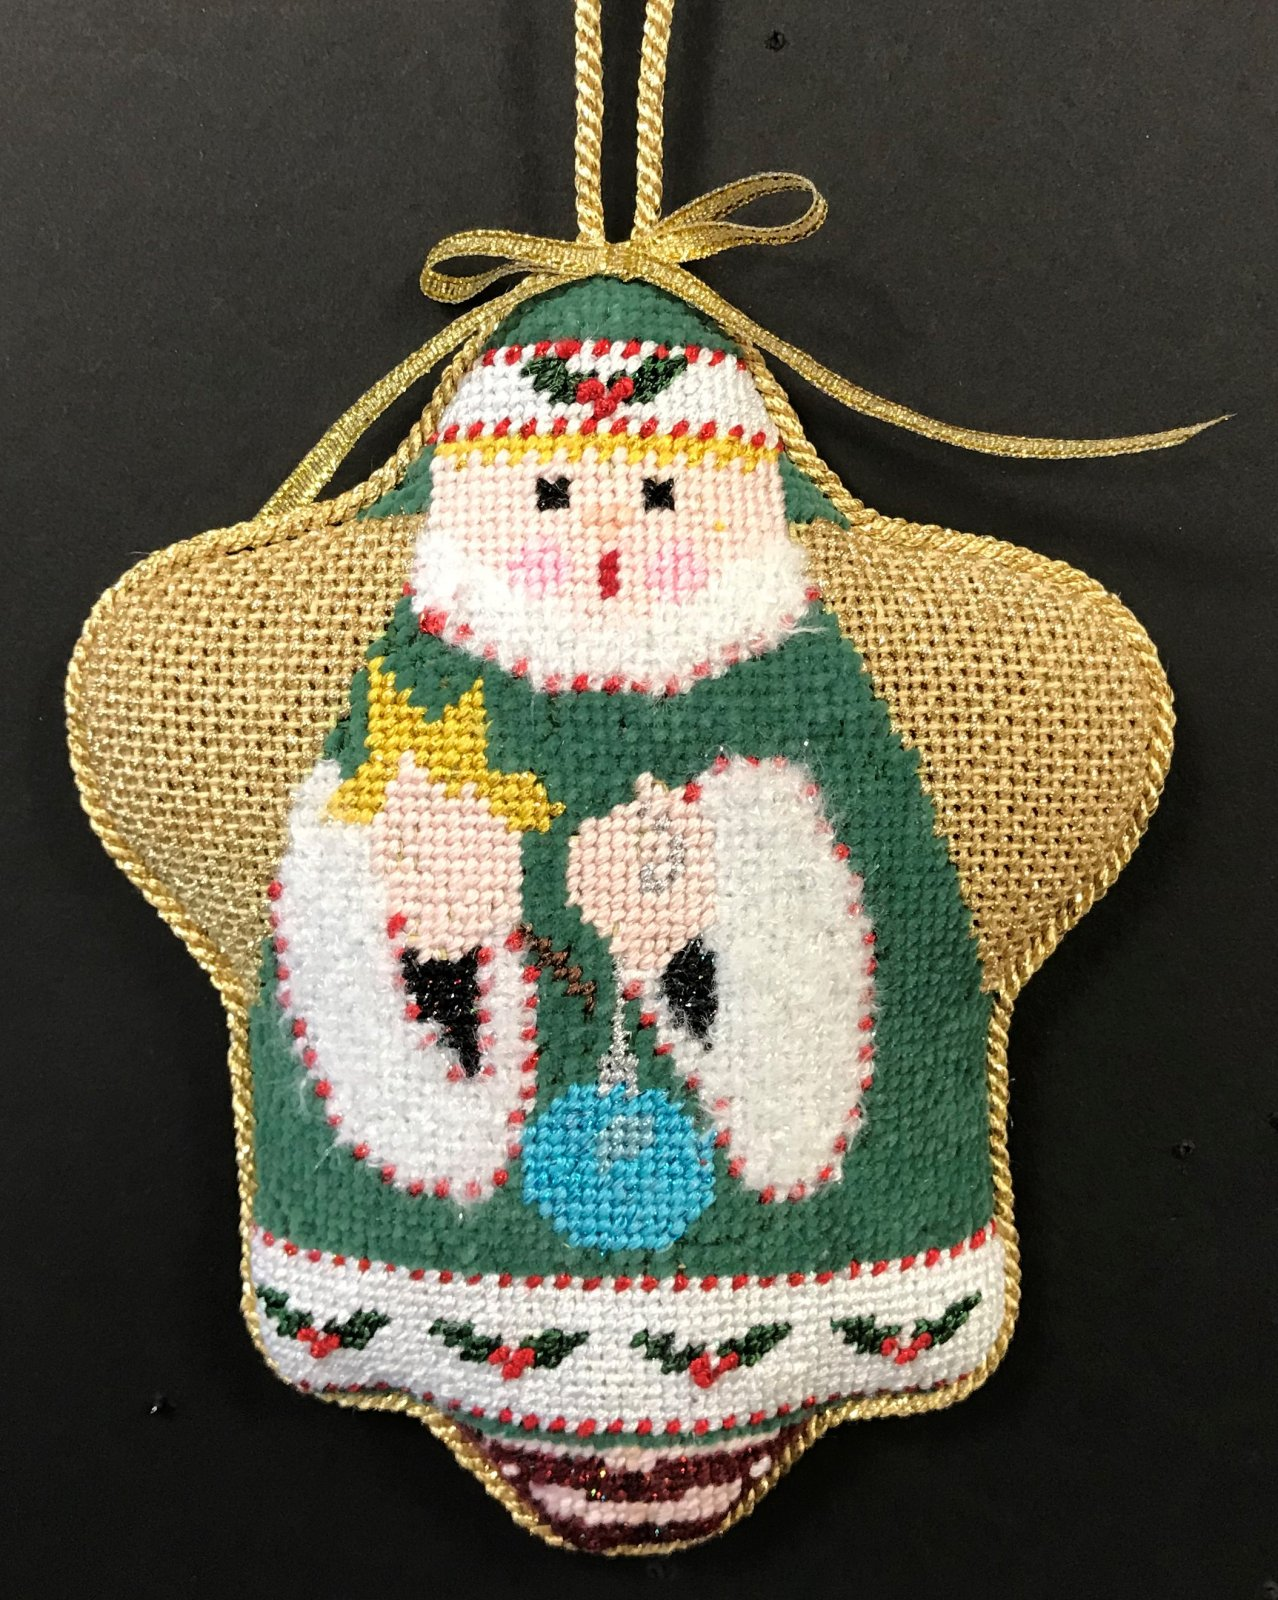 Green Angel Ornament - stitched by Linda Wenner